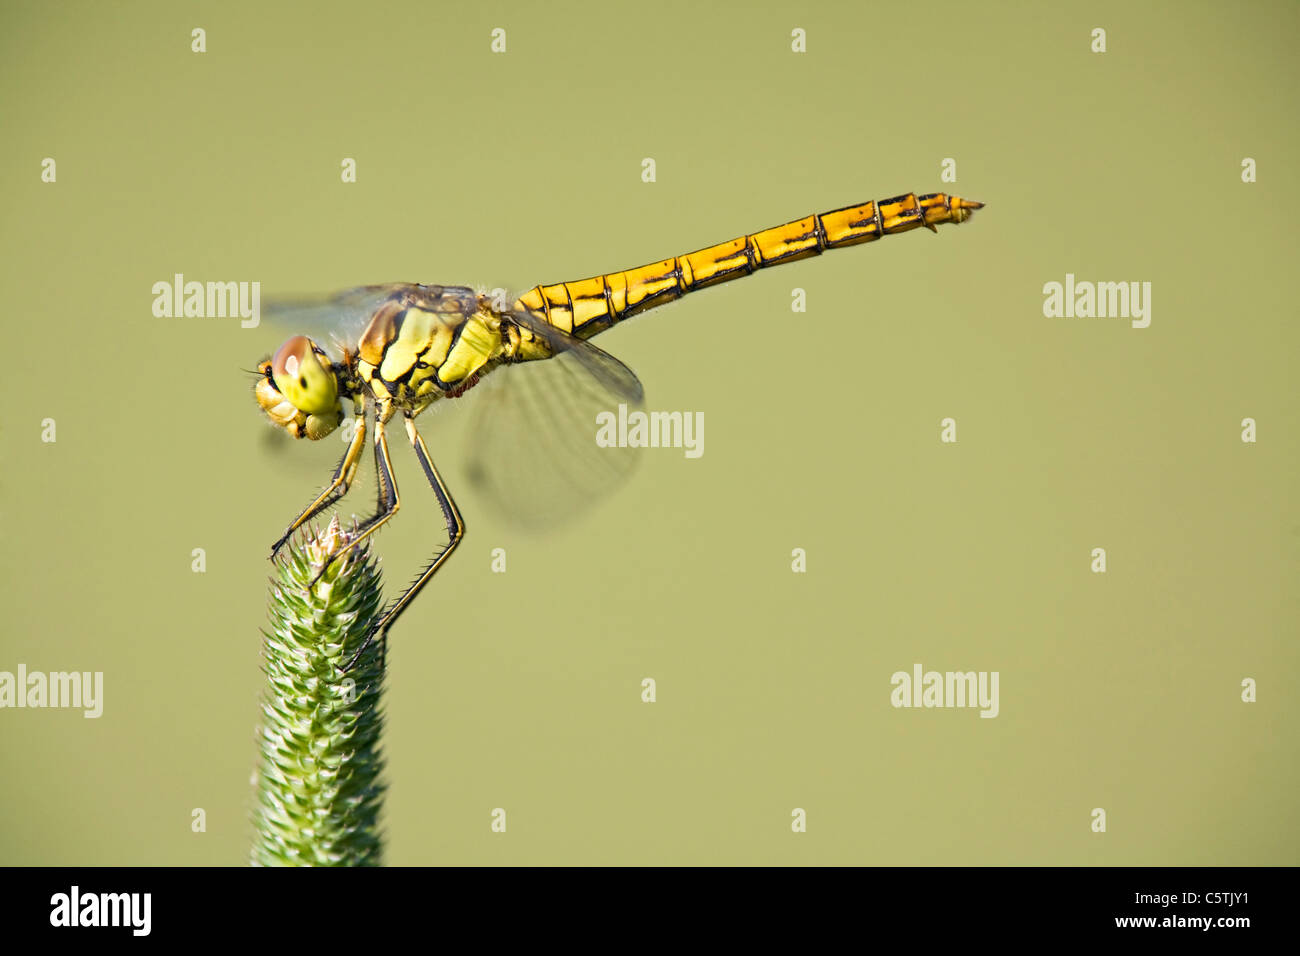 Dragonfly (Sympetrum) on grass Stock Photo